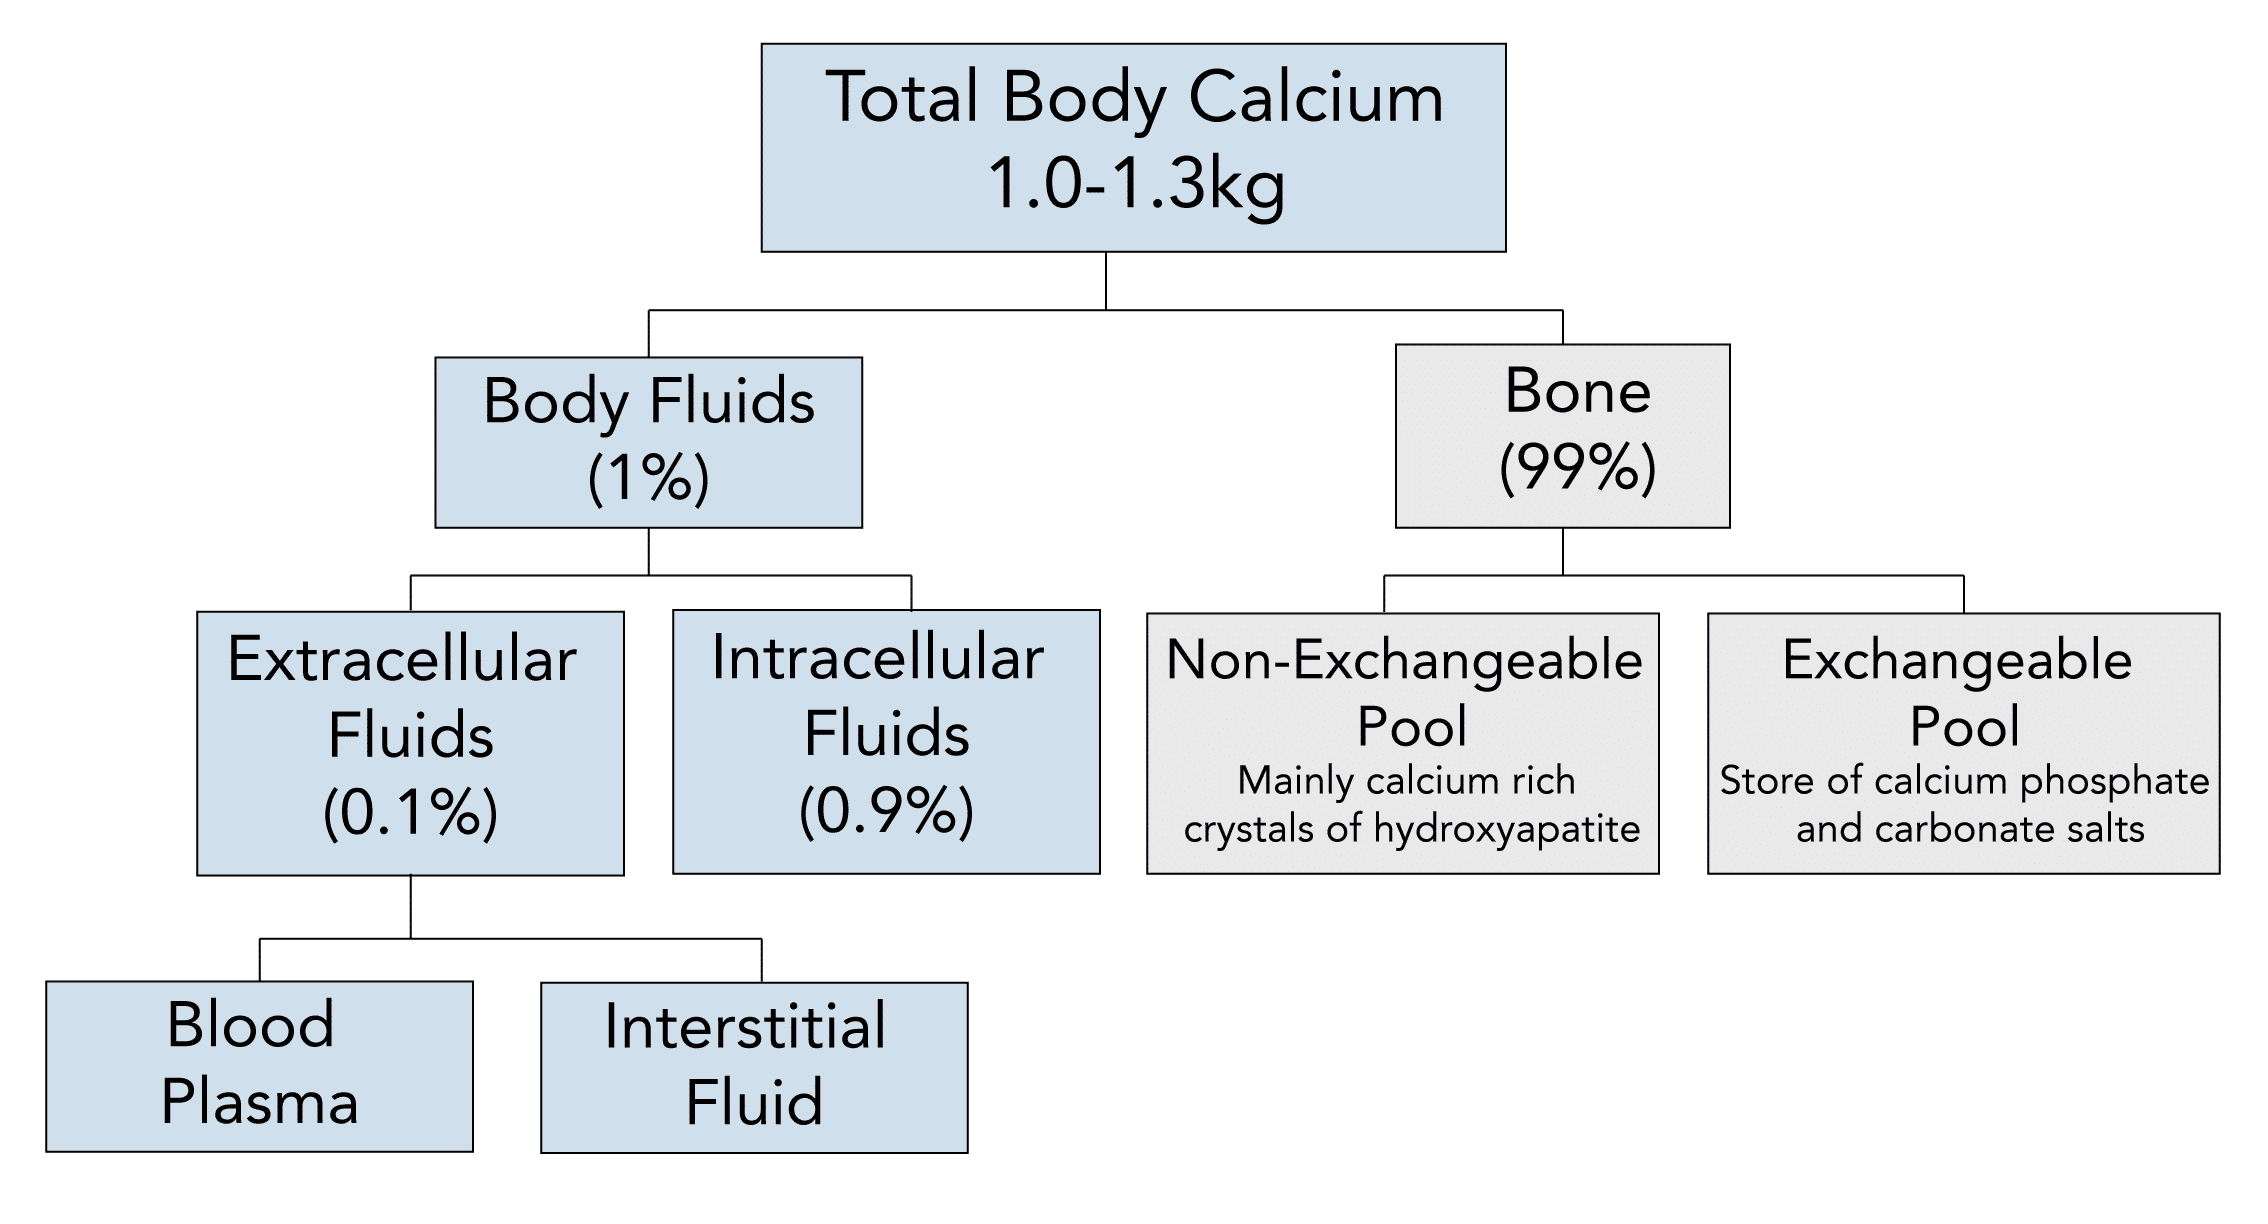 Calcium distribution and stores in the body